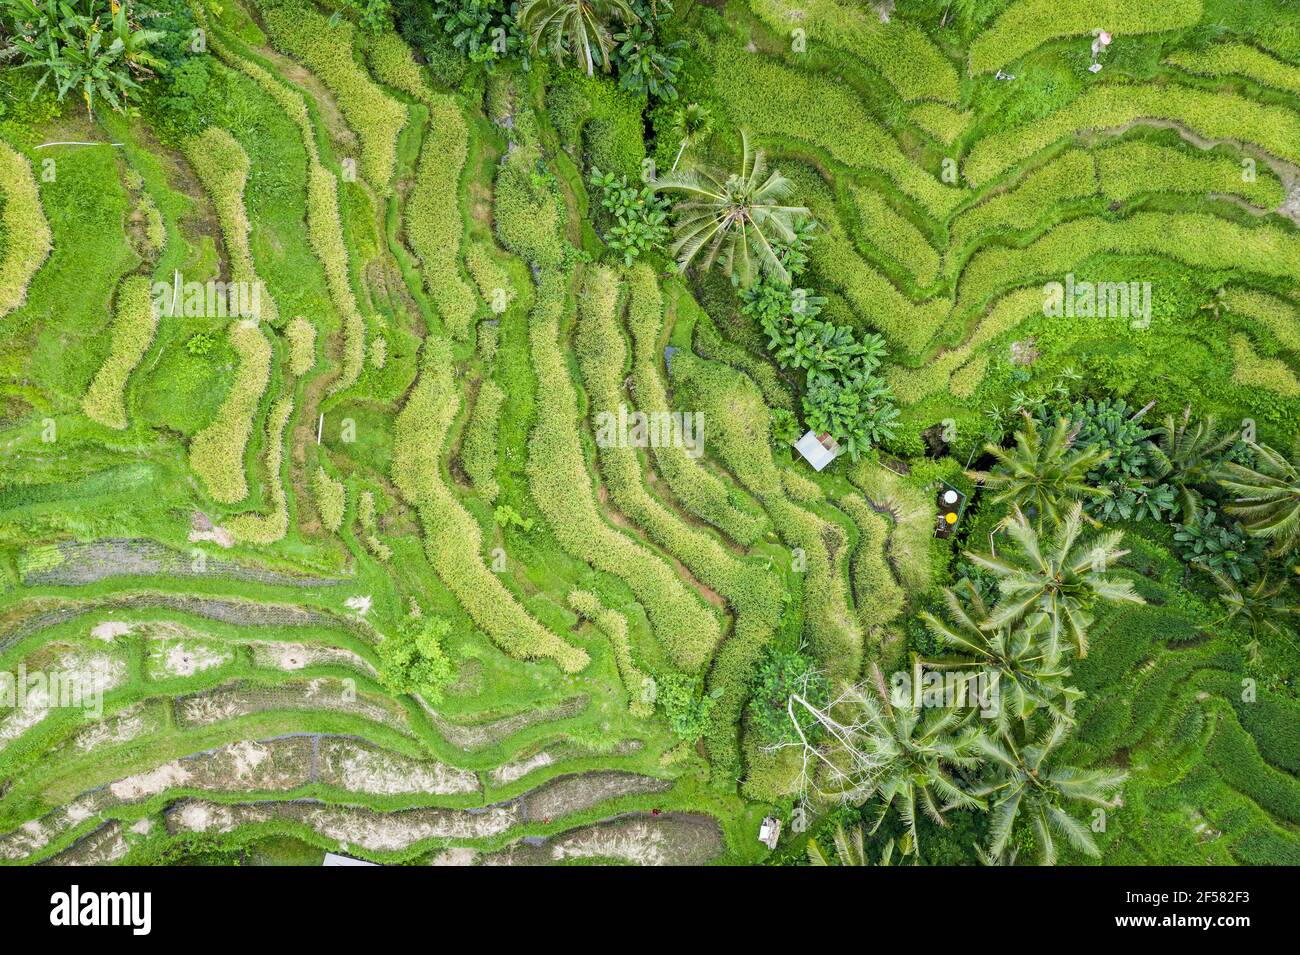 Top down view of the famous Tegallalang Rice Terraces near Ubud in Bali, Indonesia. Stock Photo